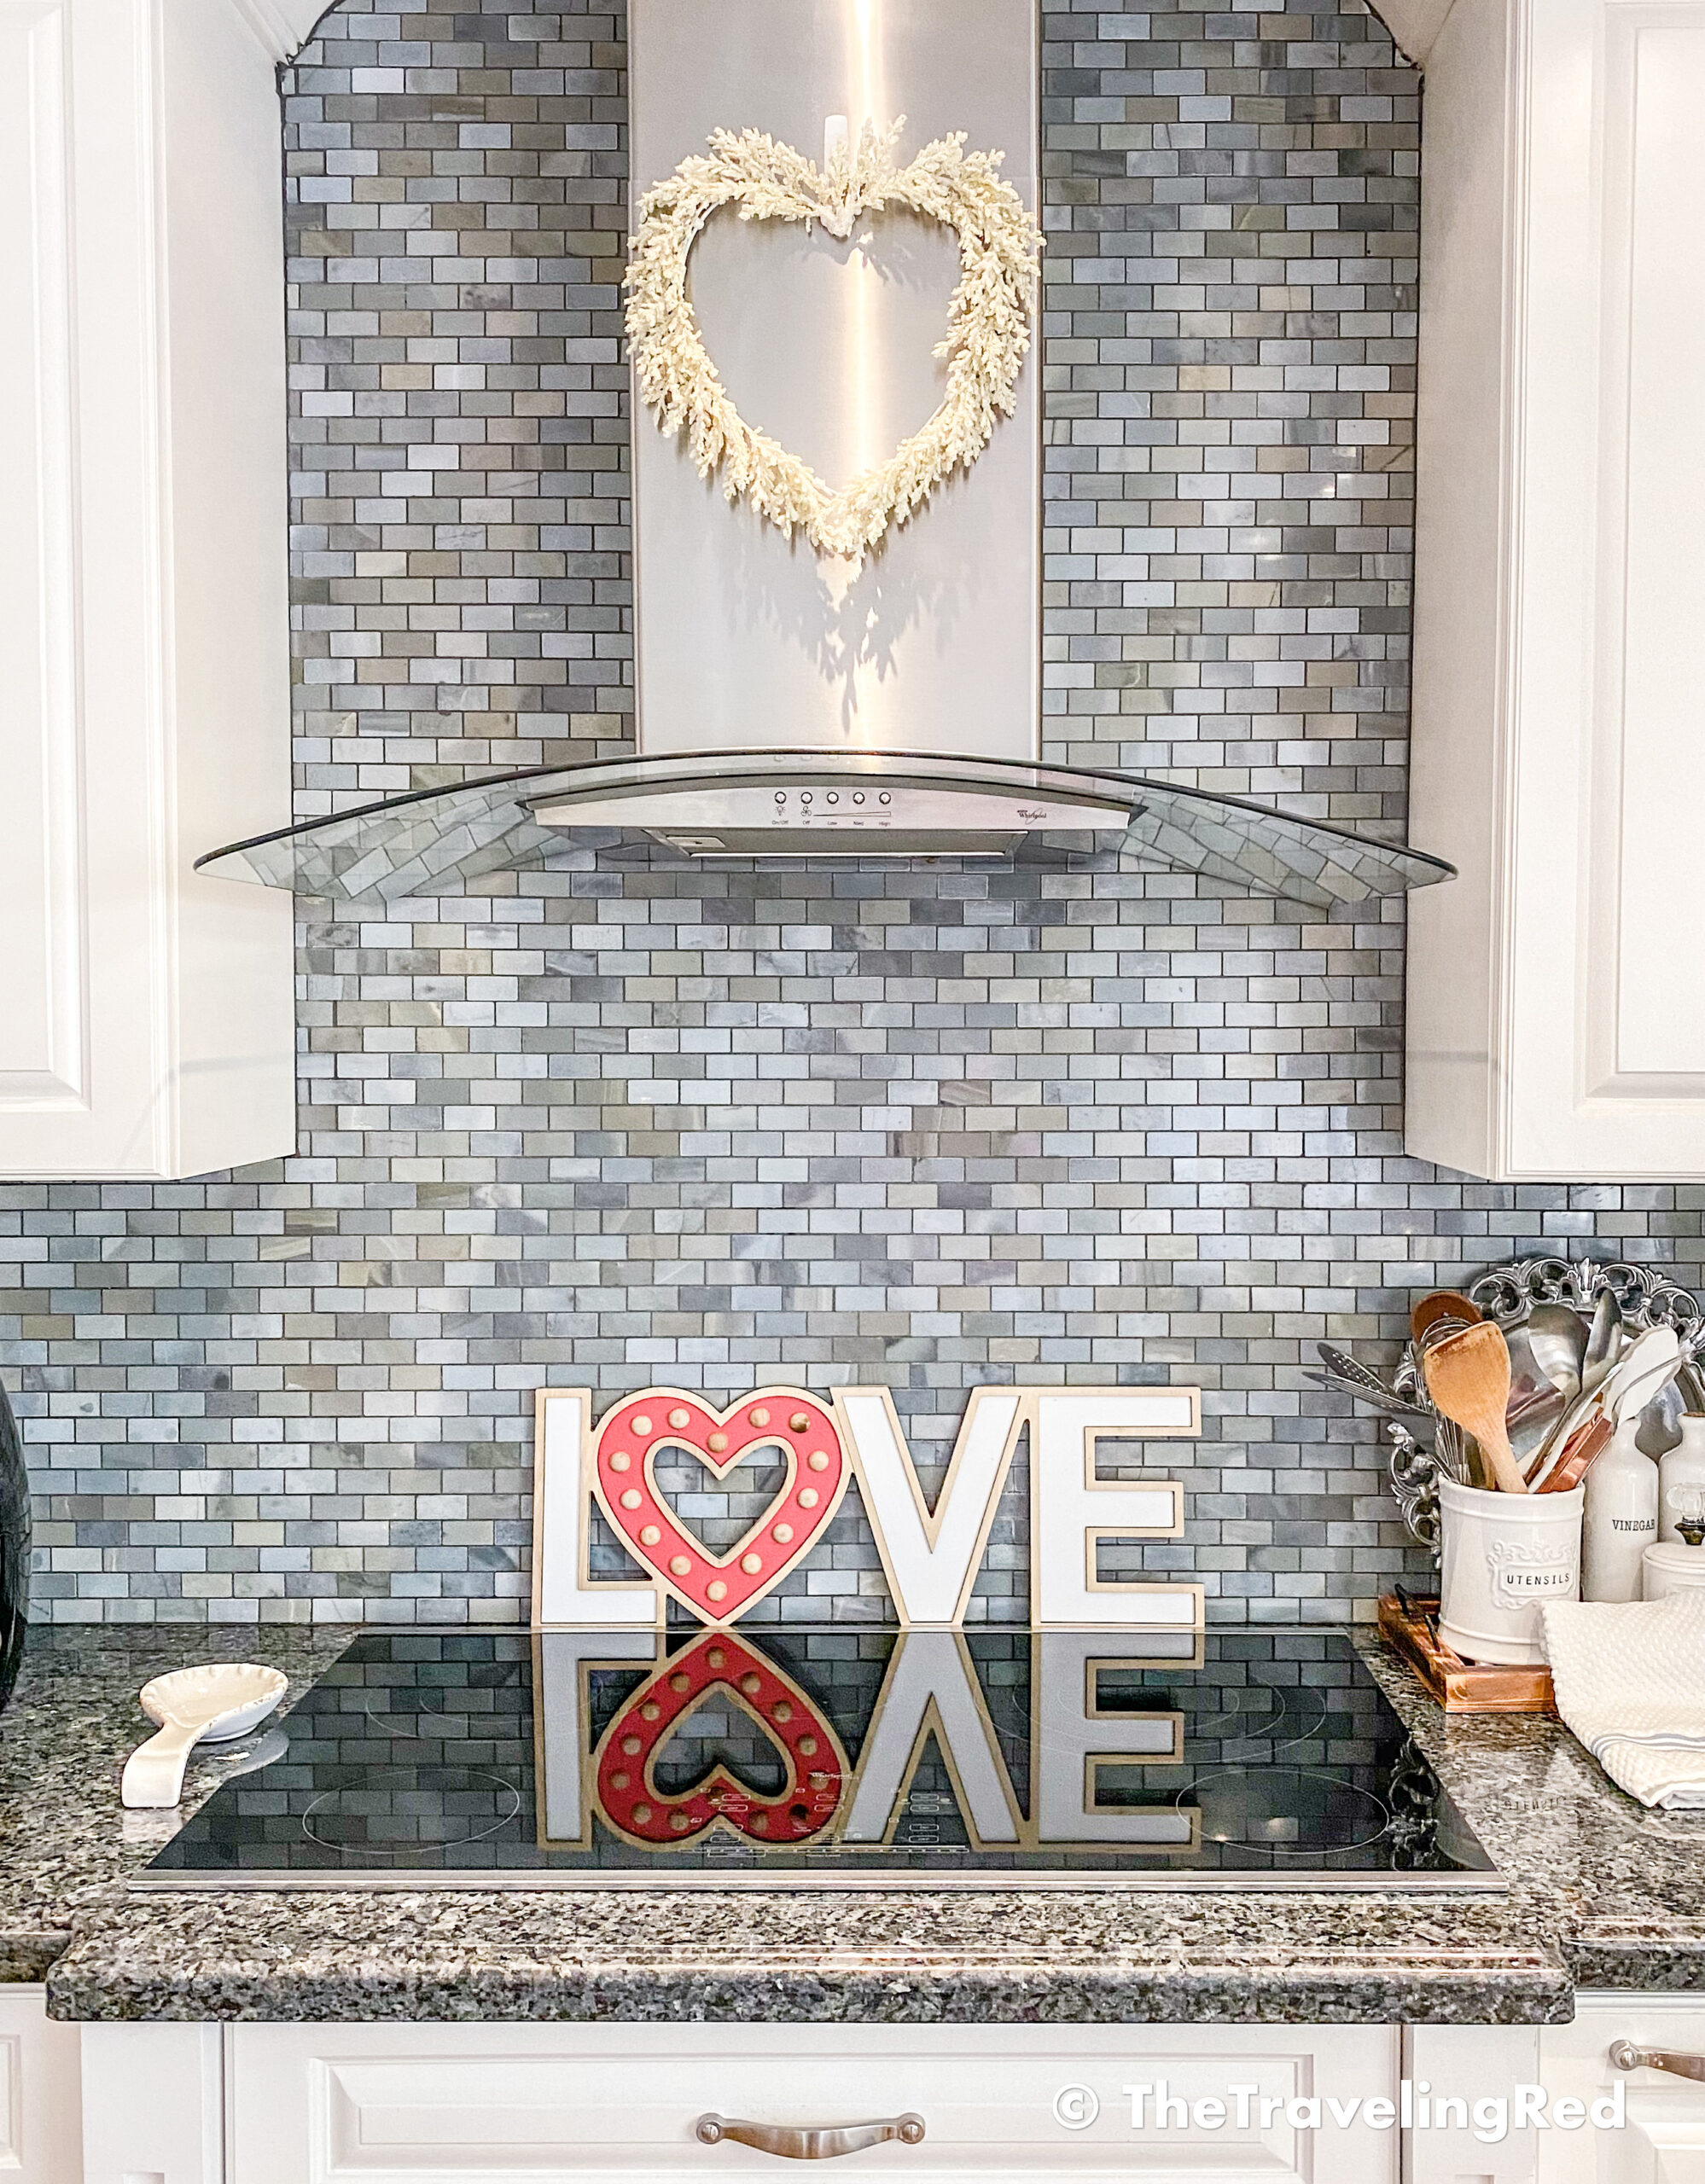 Valentine's Day Home Decor - Kitchen styling using a simple wh8ite heart wreath on my hood and a wood love sign behind the range - #valentinesday #valentinesdaydecor #homedecor #kitchendecor #valentinesdayhomedecor